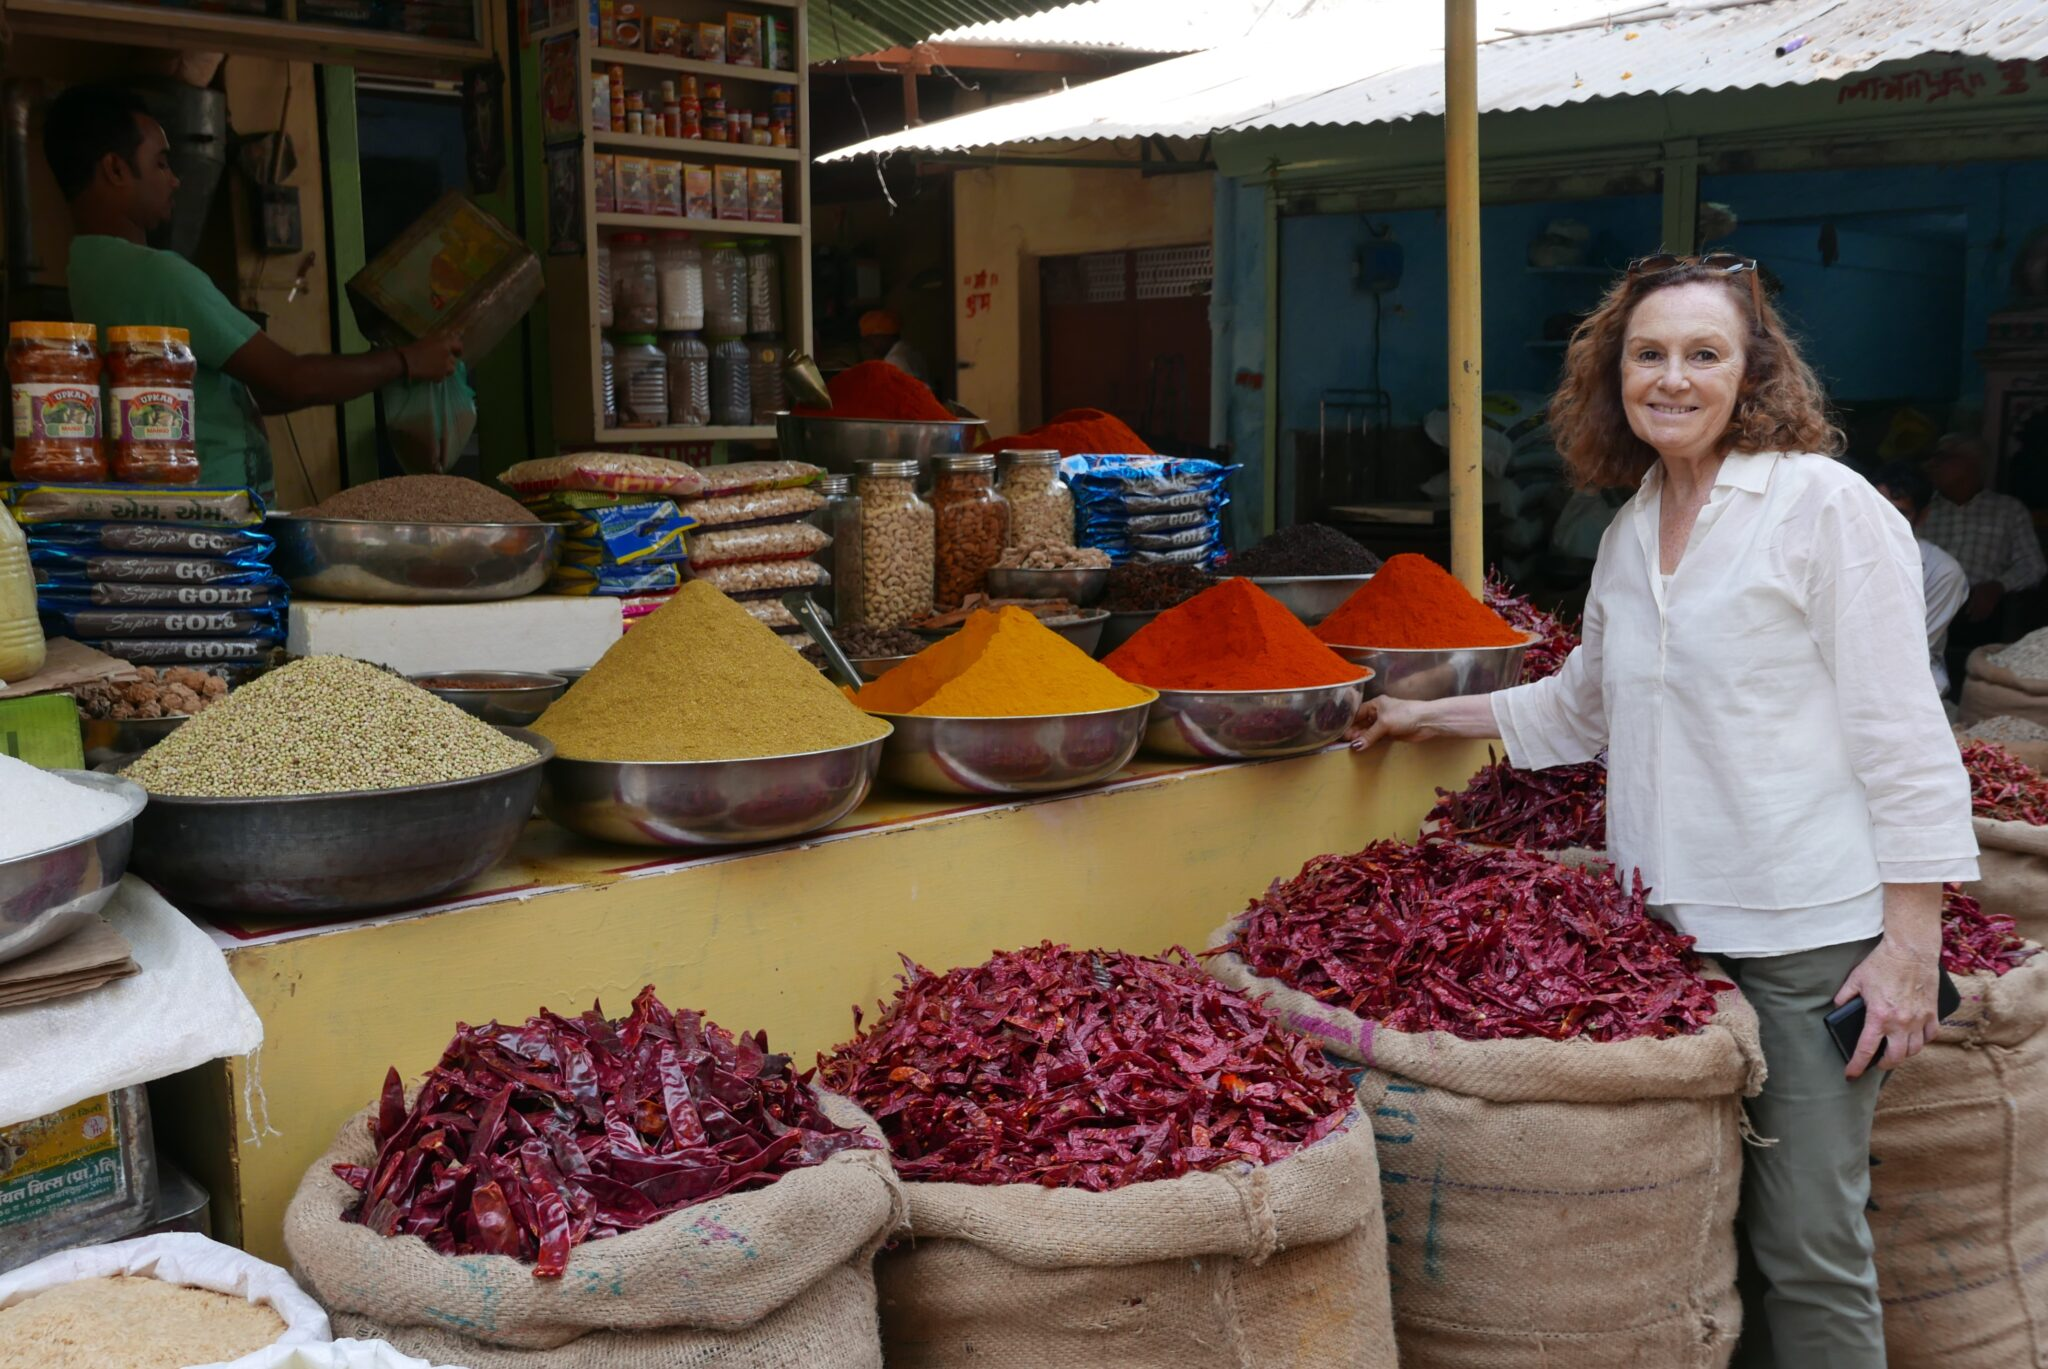 Pilar Latorre. World Cuisine. Viaje a la India 2017: Mercado Chandn Chowk